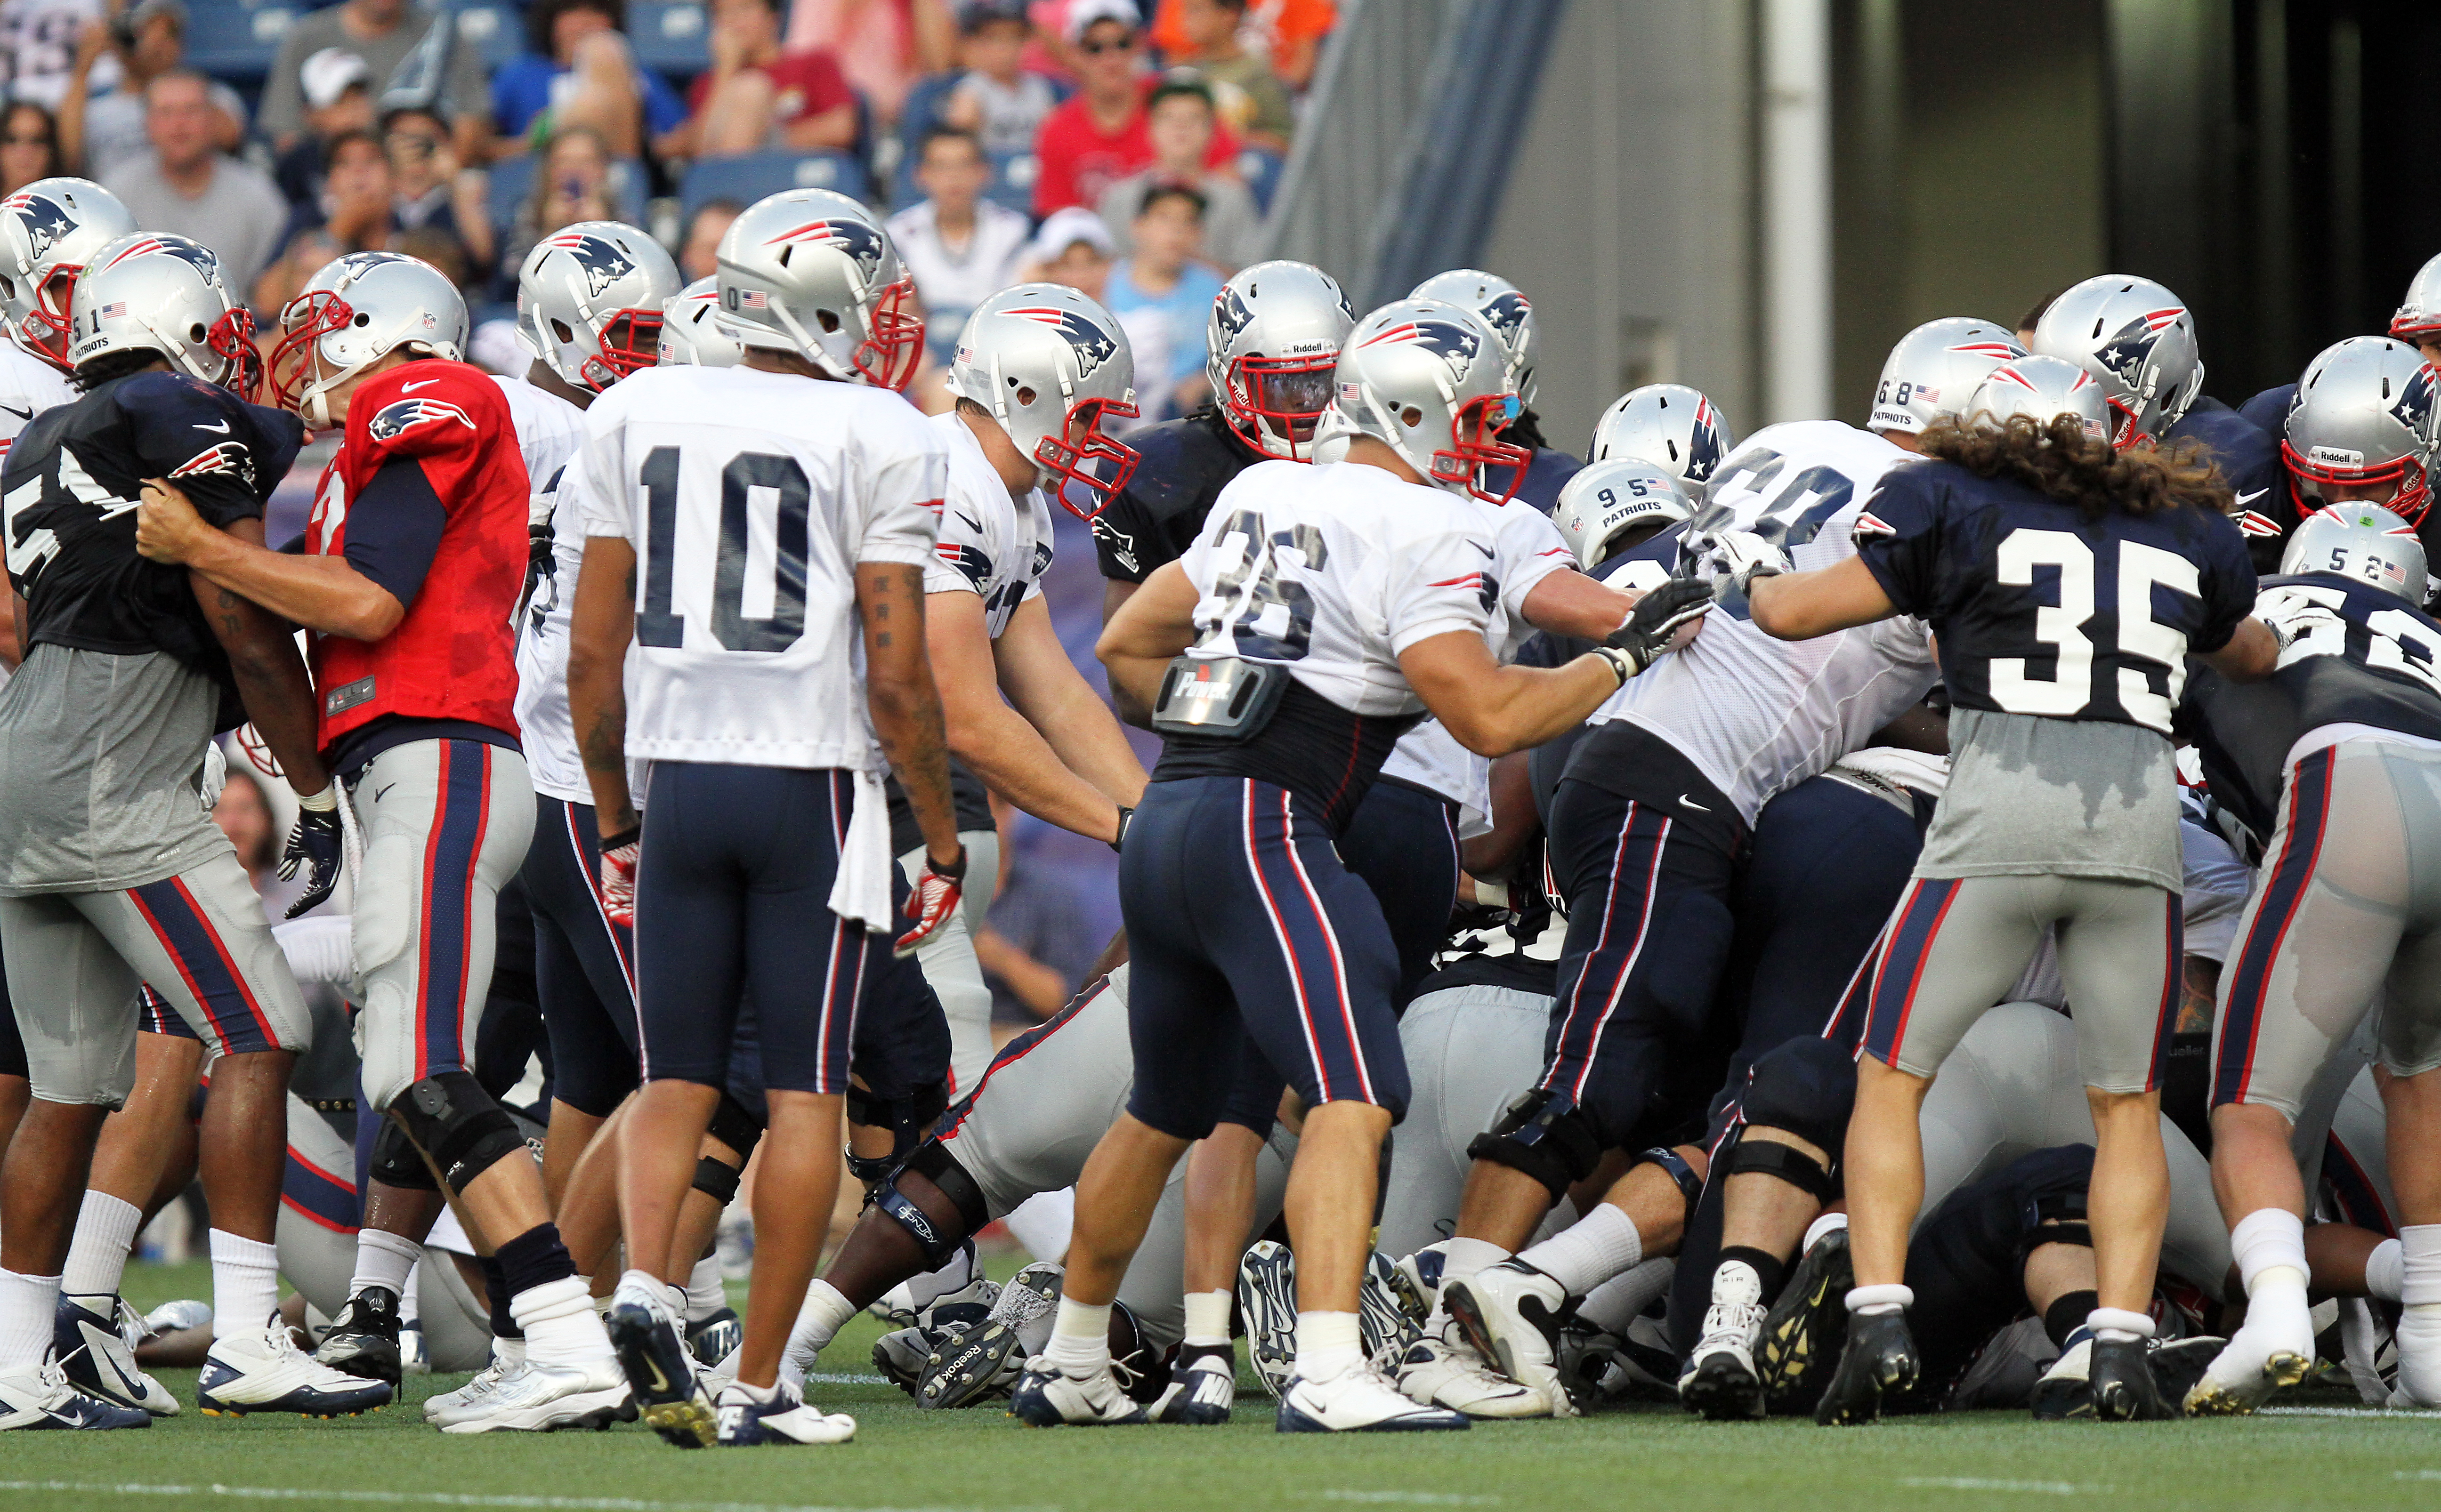 d4d62d1e 1, 2012: New England Patriots wide receiver Wes Welker catches a ball from  quarterback Tom Brady during the Patriots' training camp practice in  Gillette ...